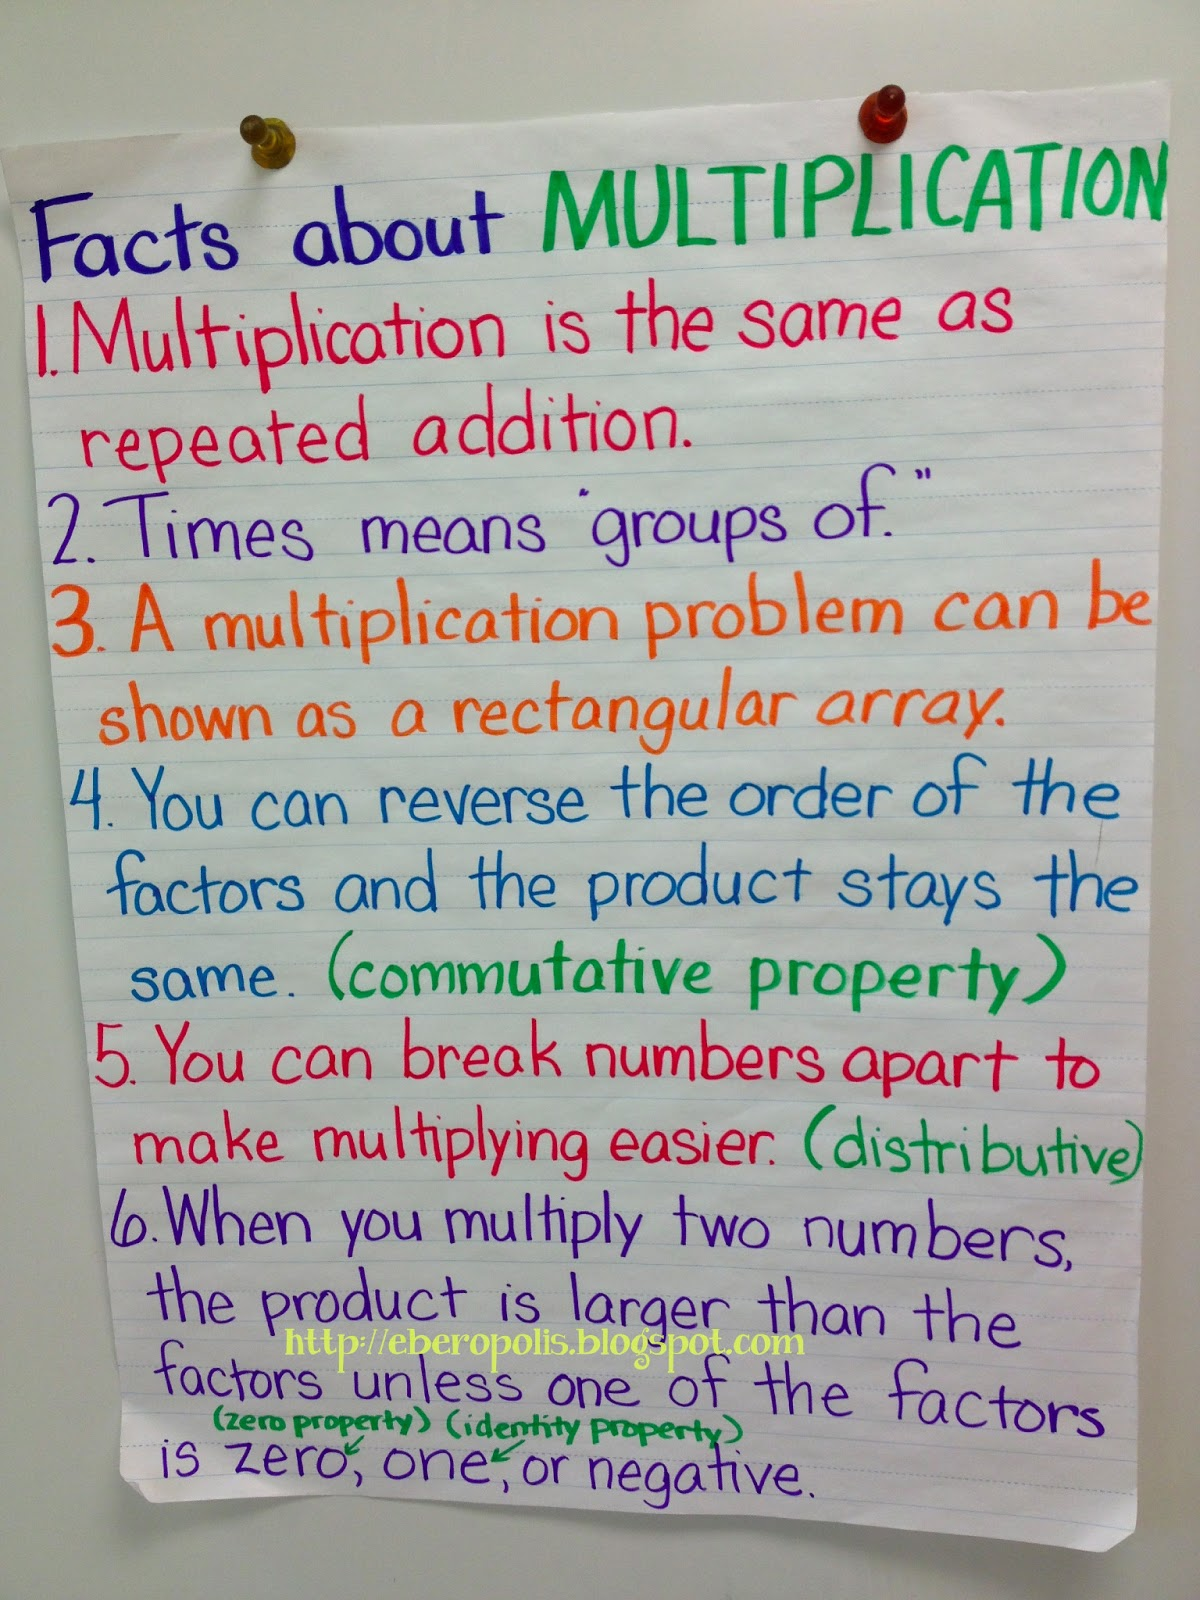 How To Multiply Fractions Examples We gave examples for each one,